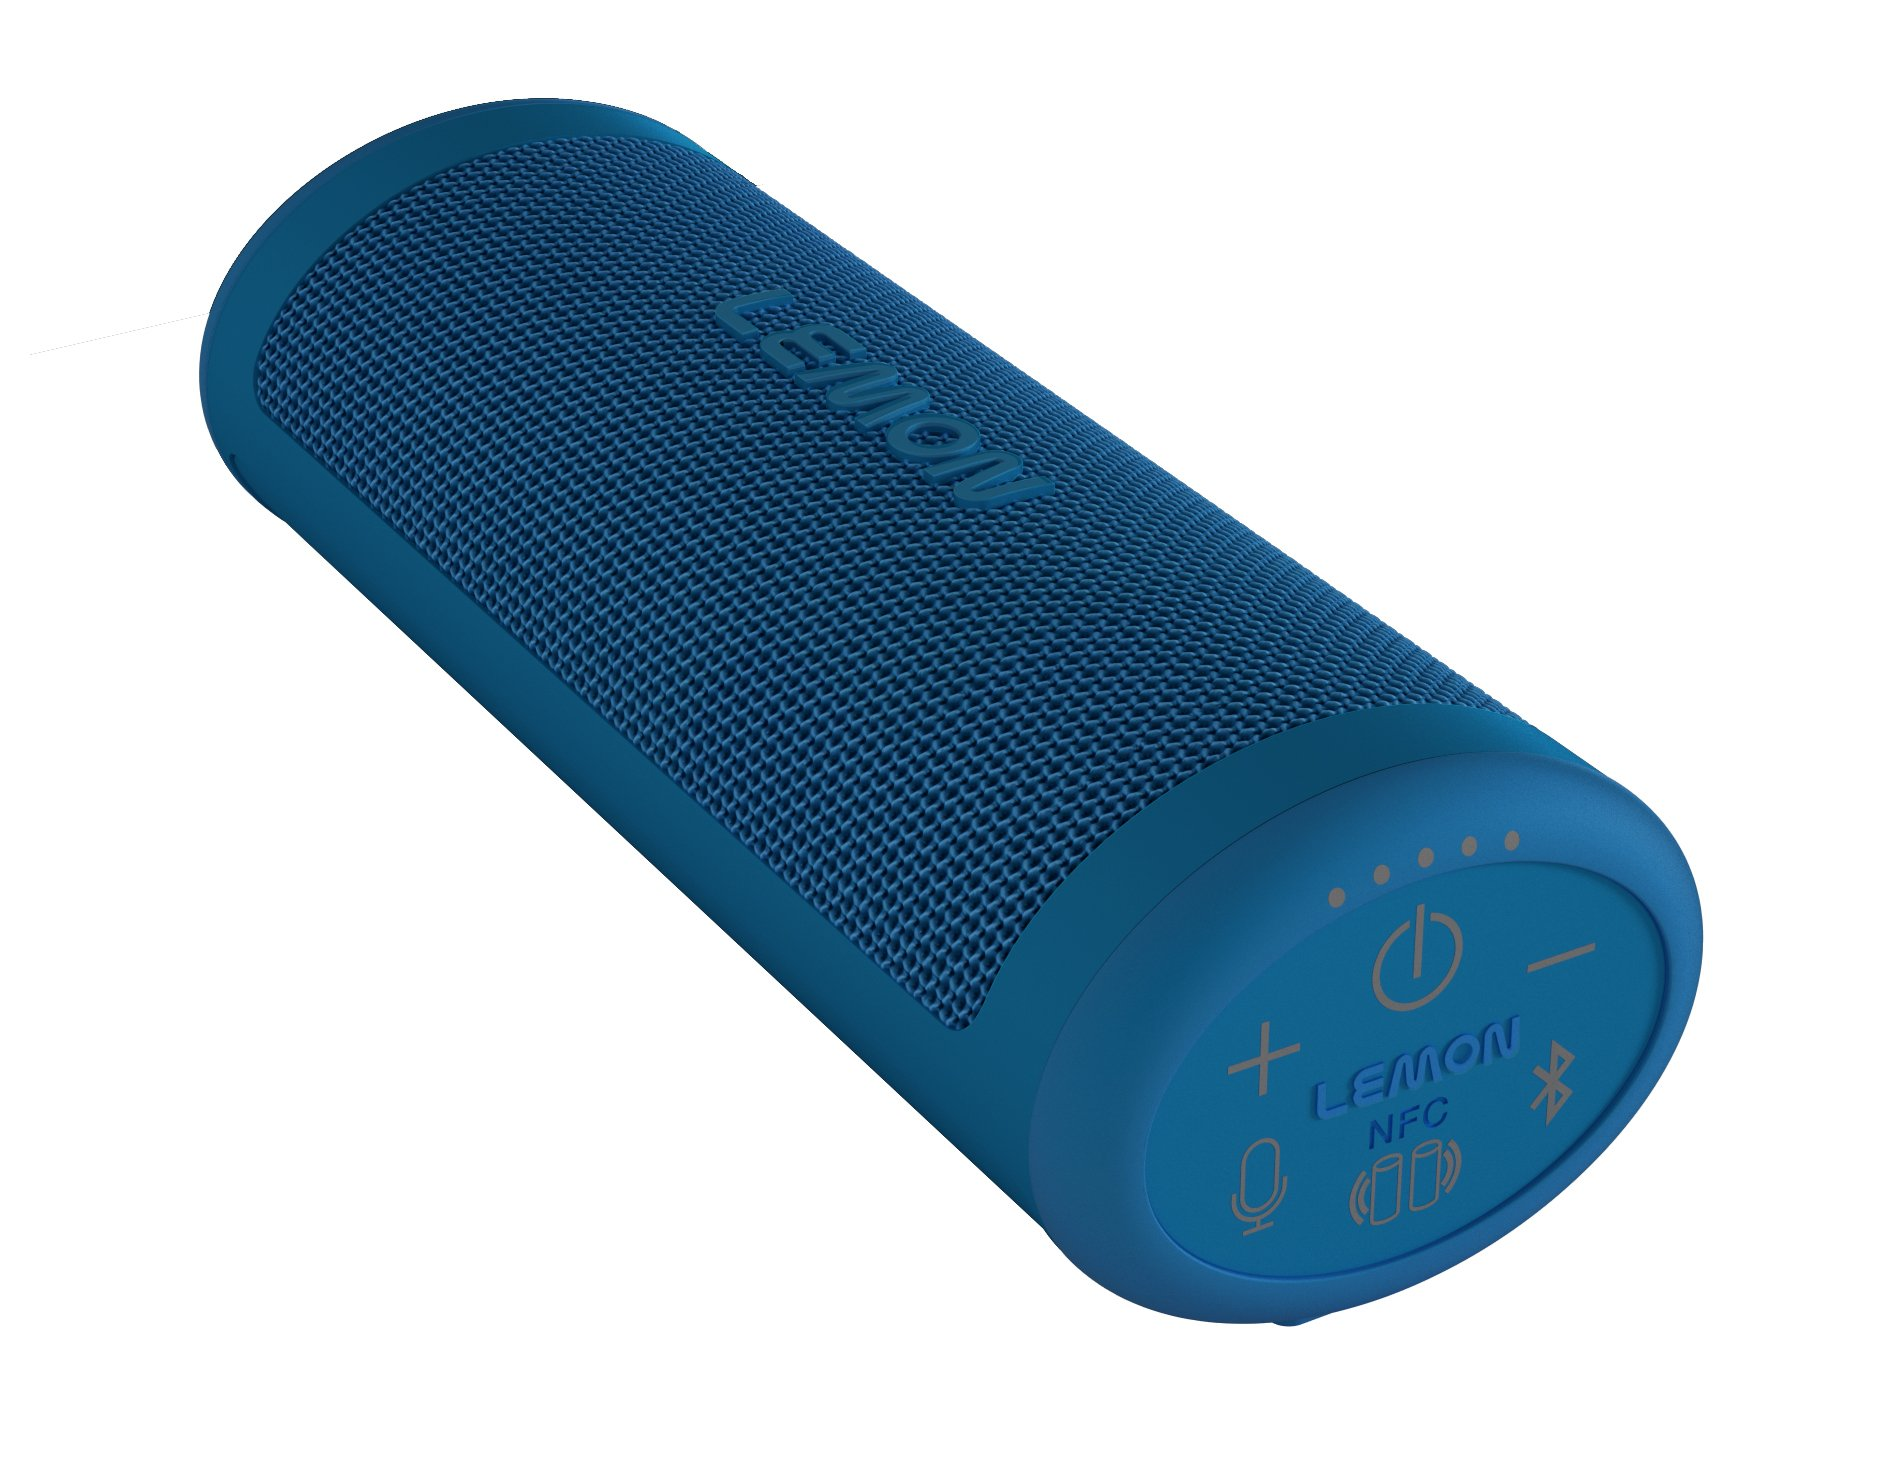 LEMON - California Roll 24/7 Solar Powered Waterproof Portable Wireless Speaker - Blue by LEMON